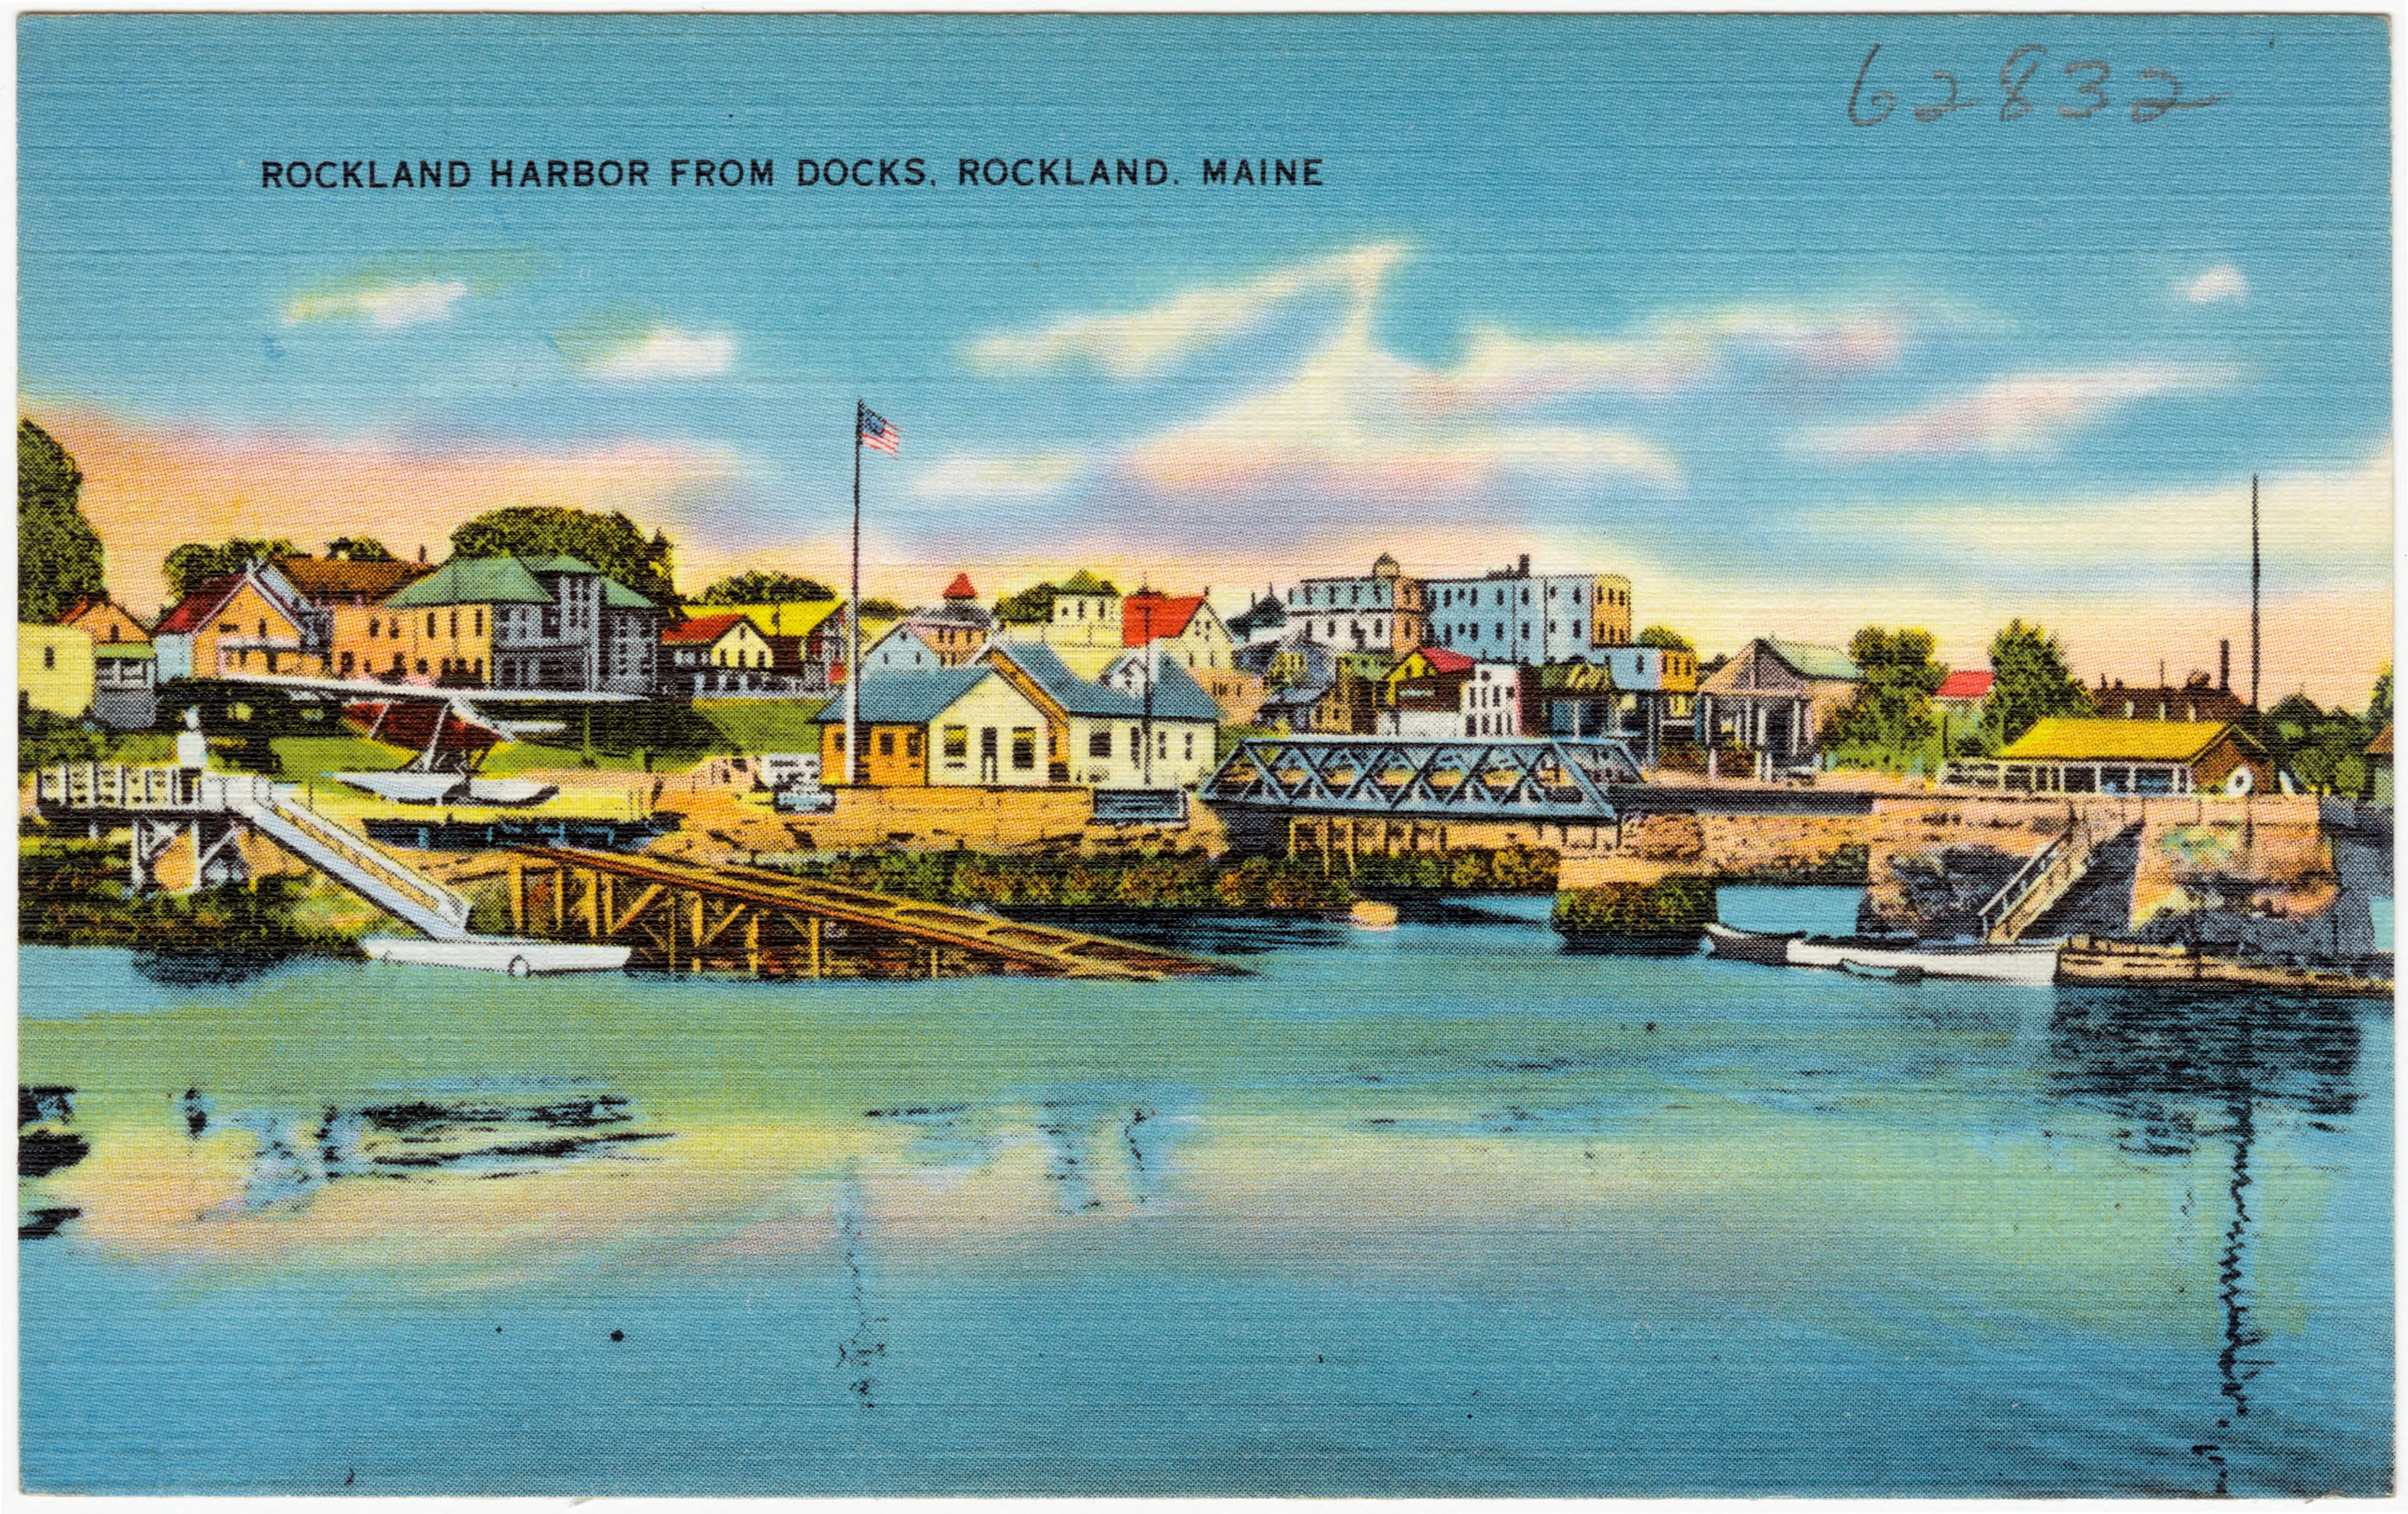 File:Rockland Harbor from Docks, Rockland, Maine (62832).jpg - Wikimedia Commons